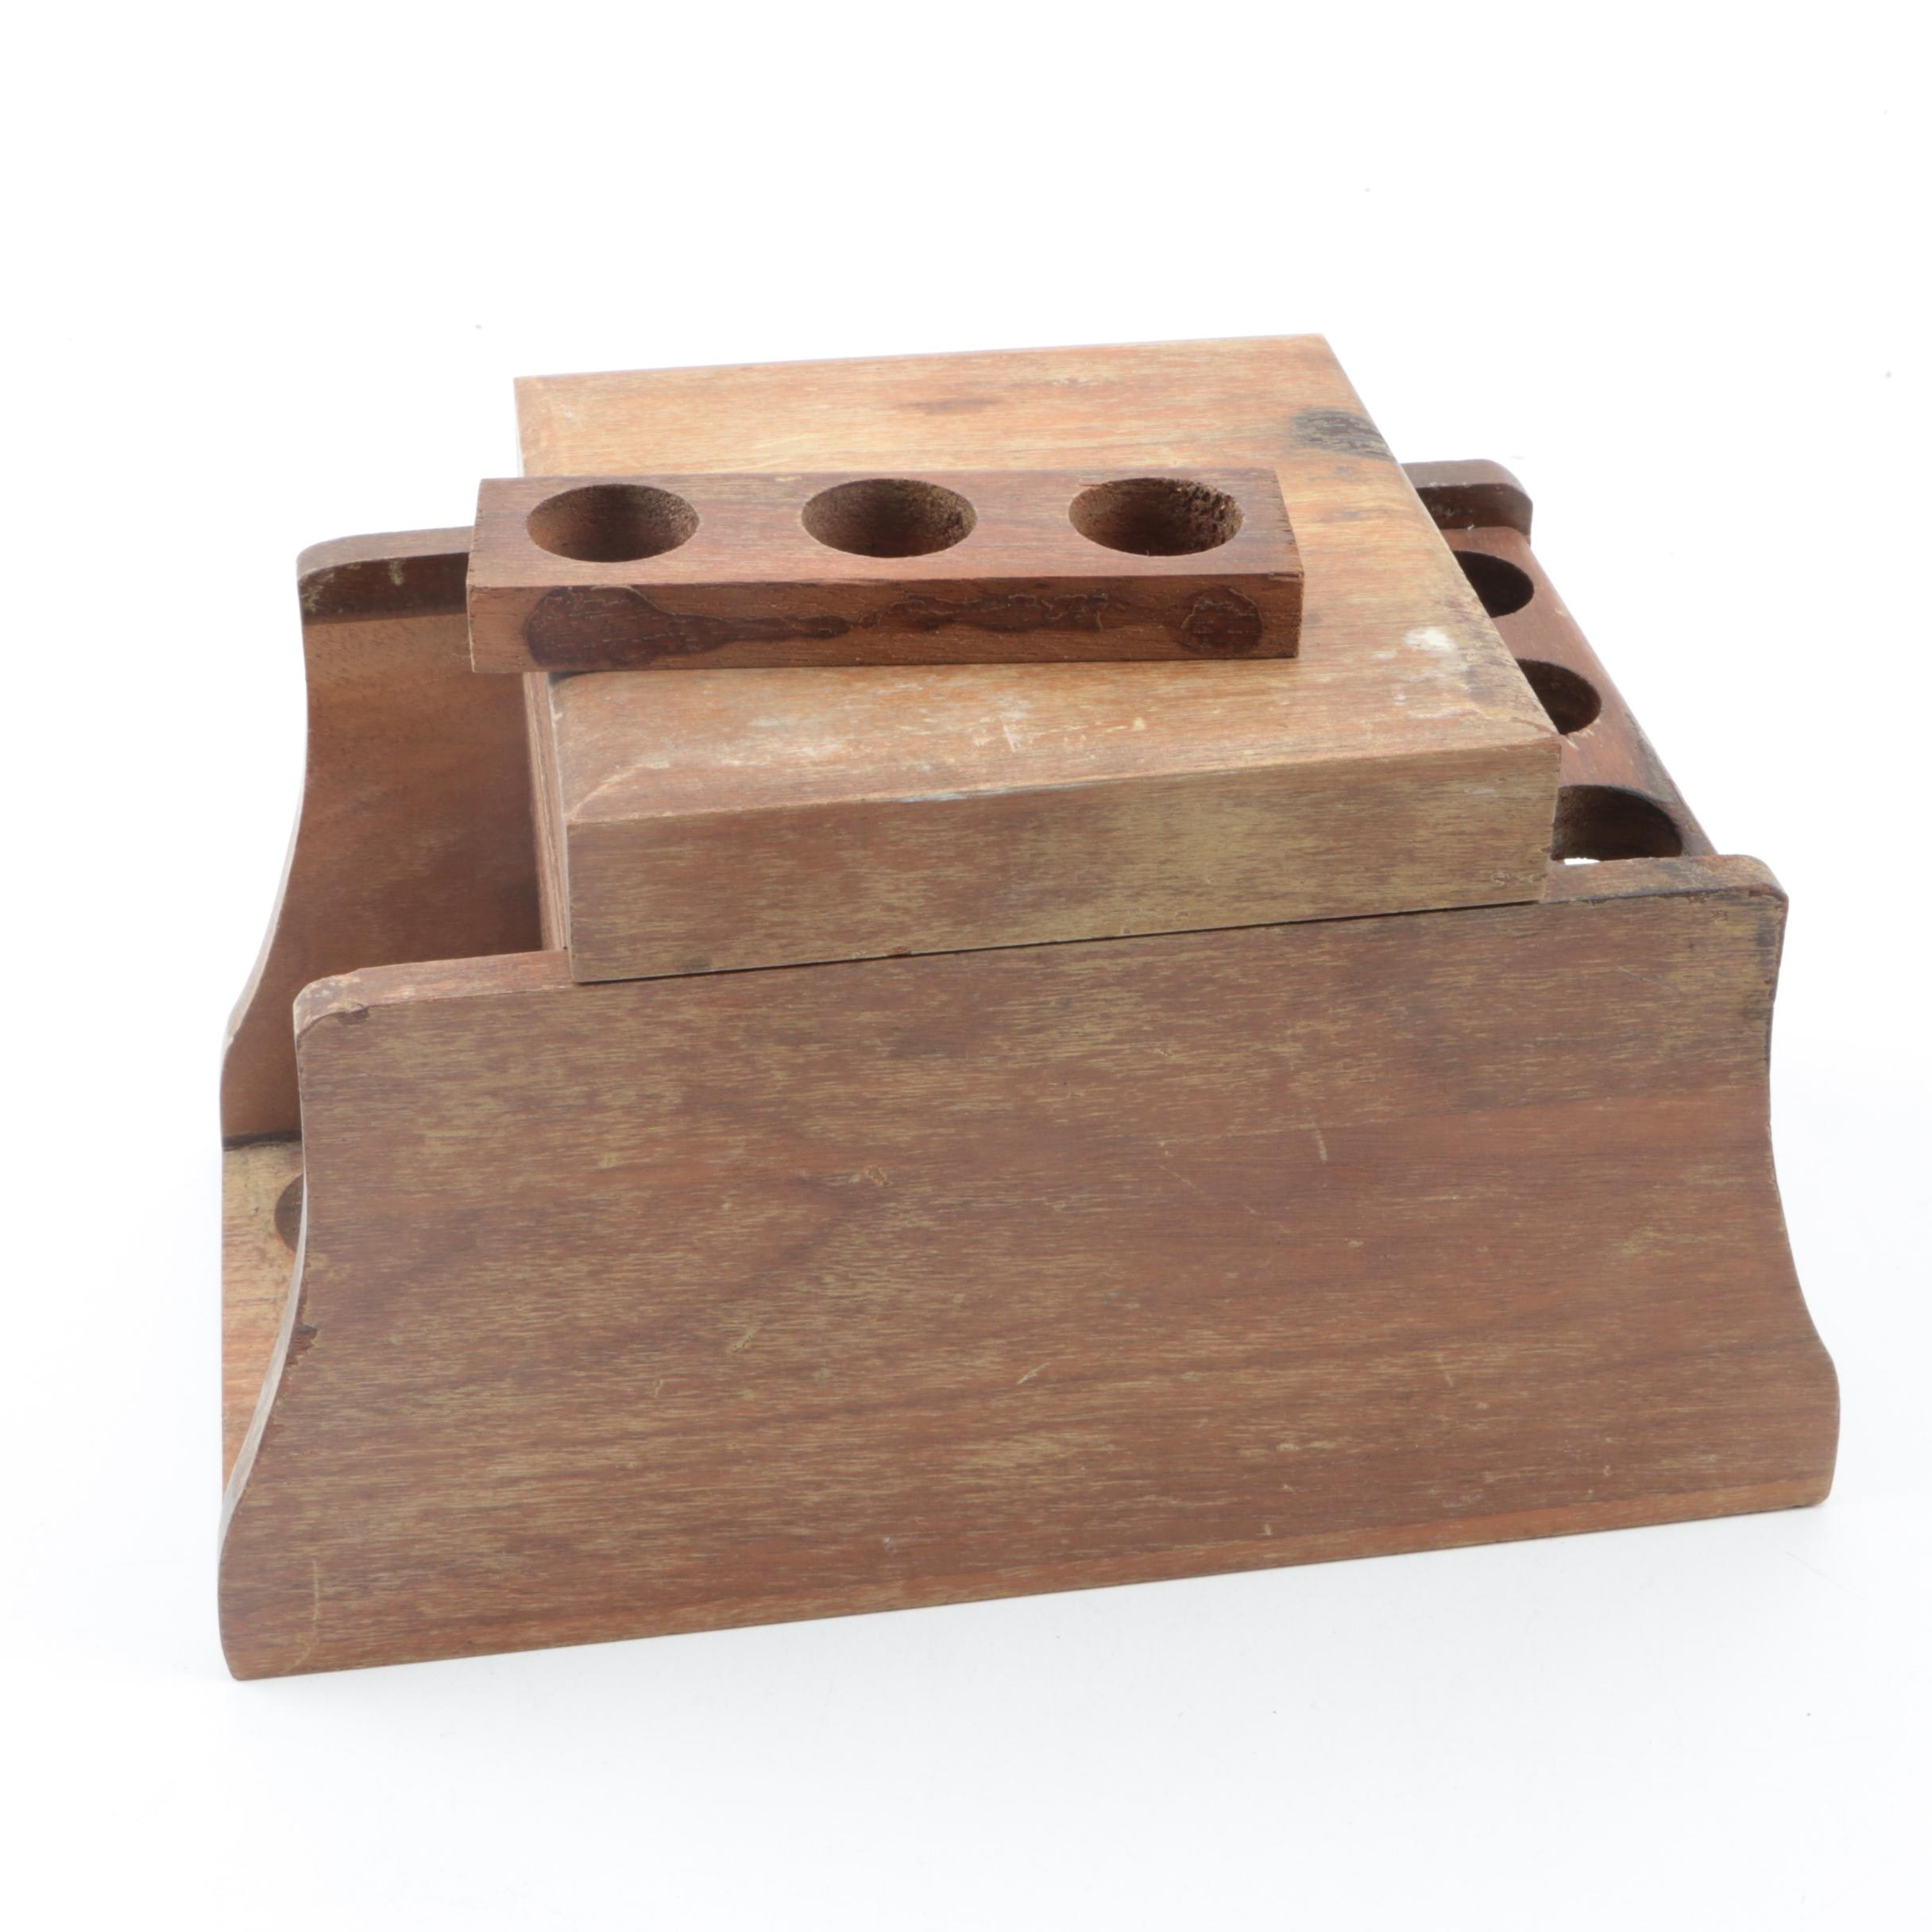 Wooden Pipe Rack and Humidor